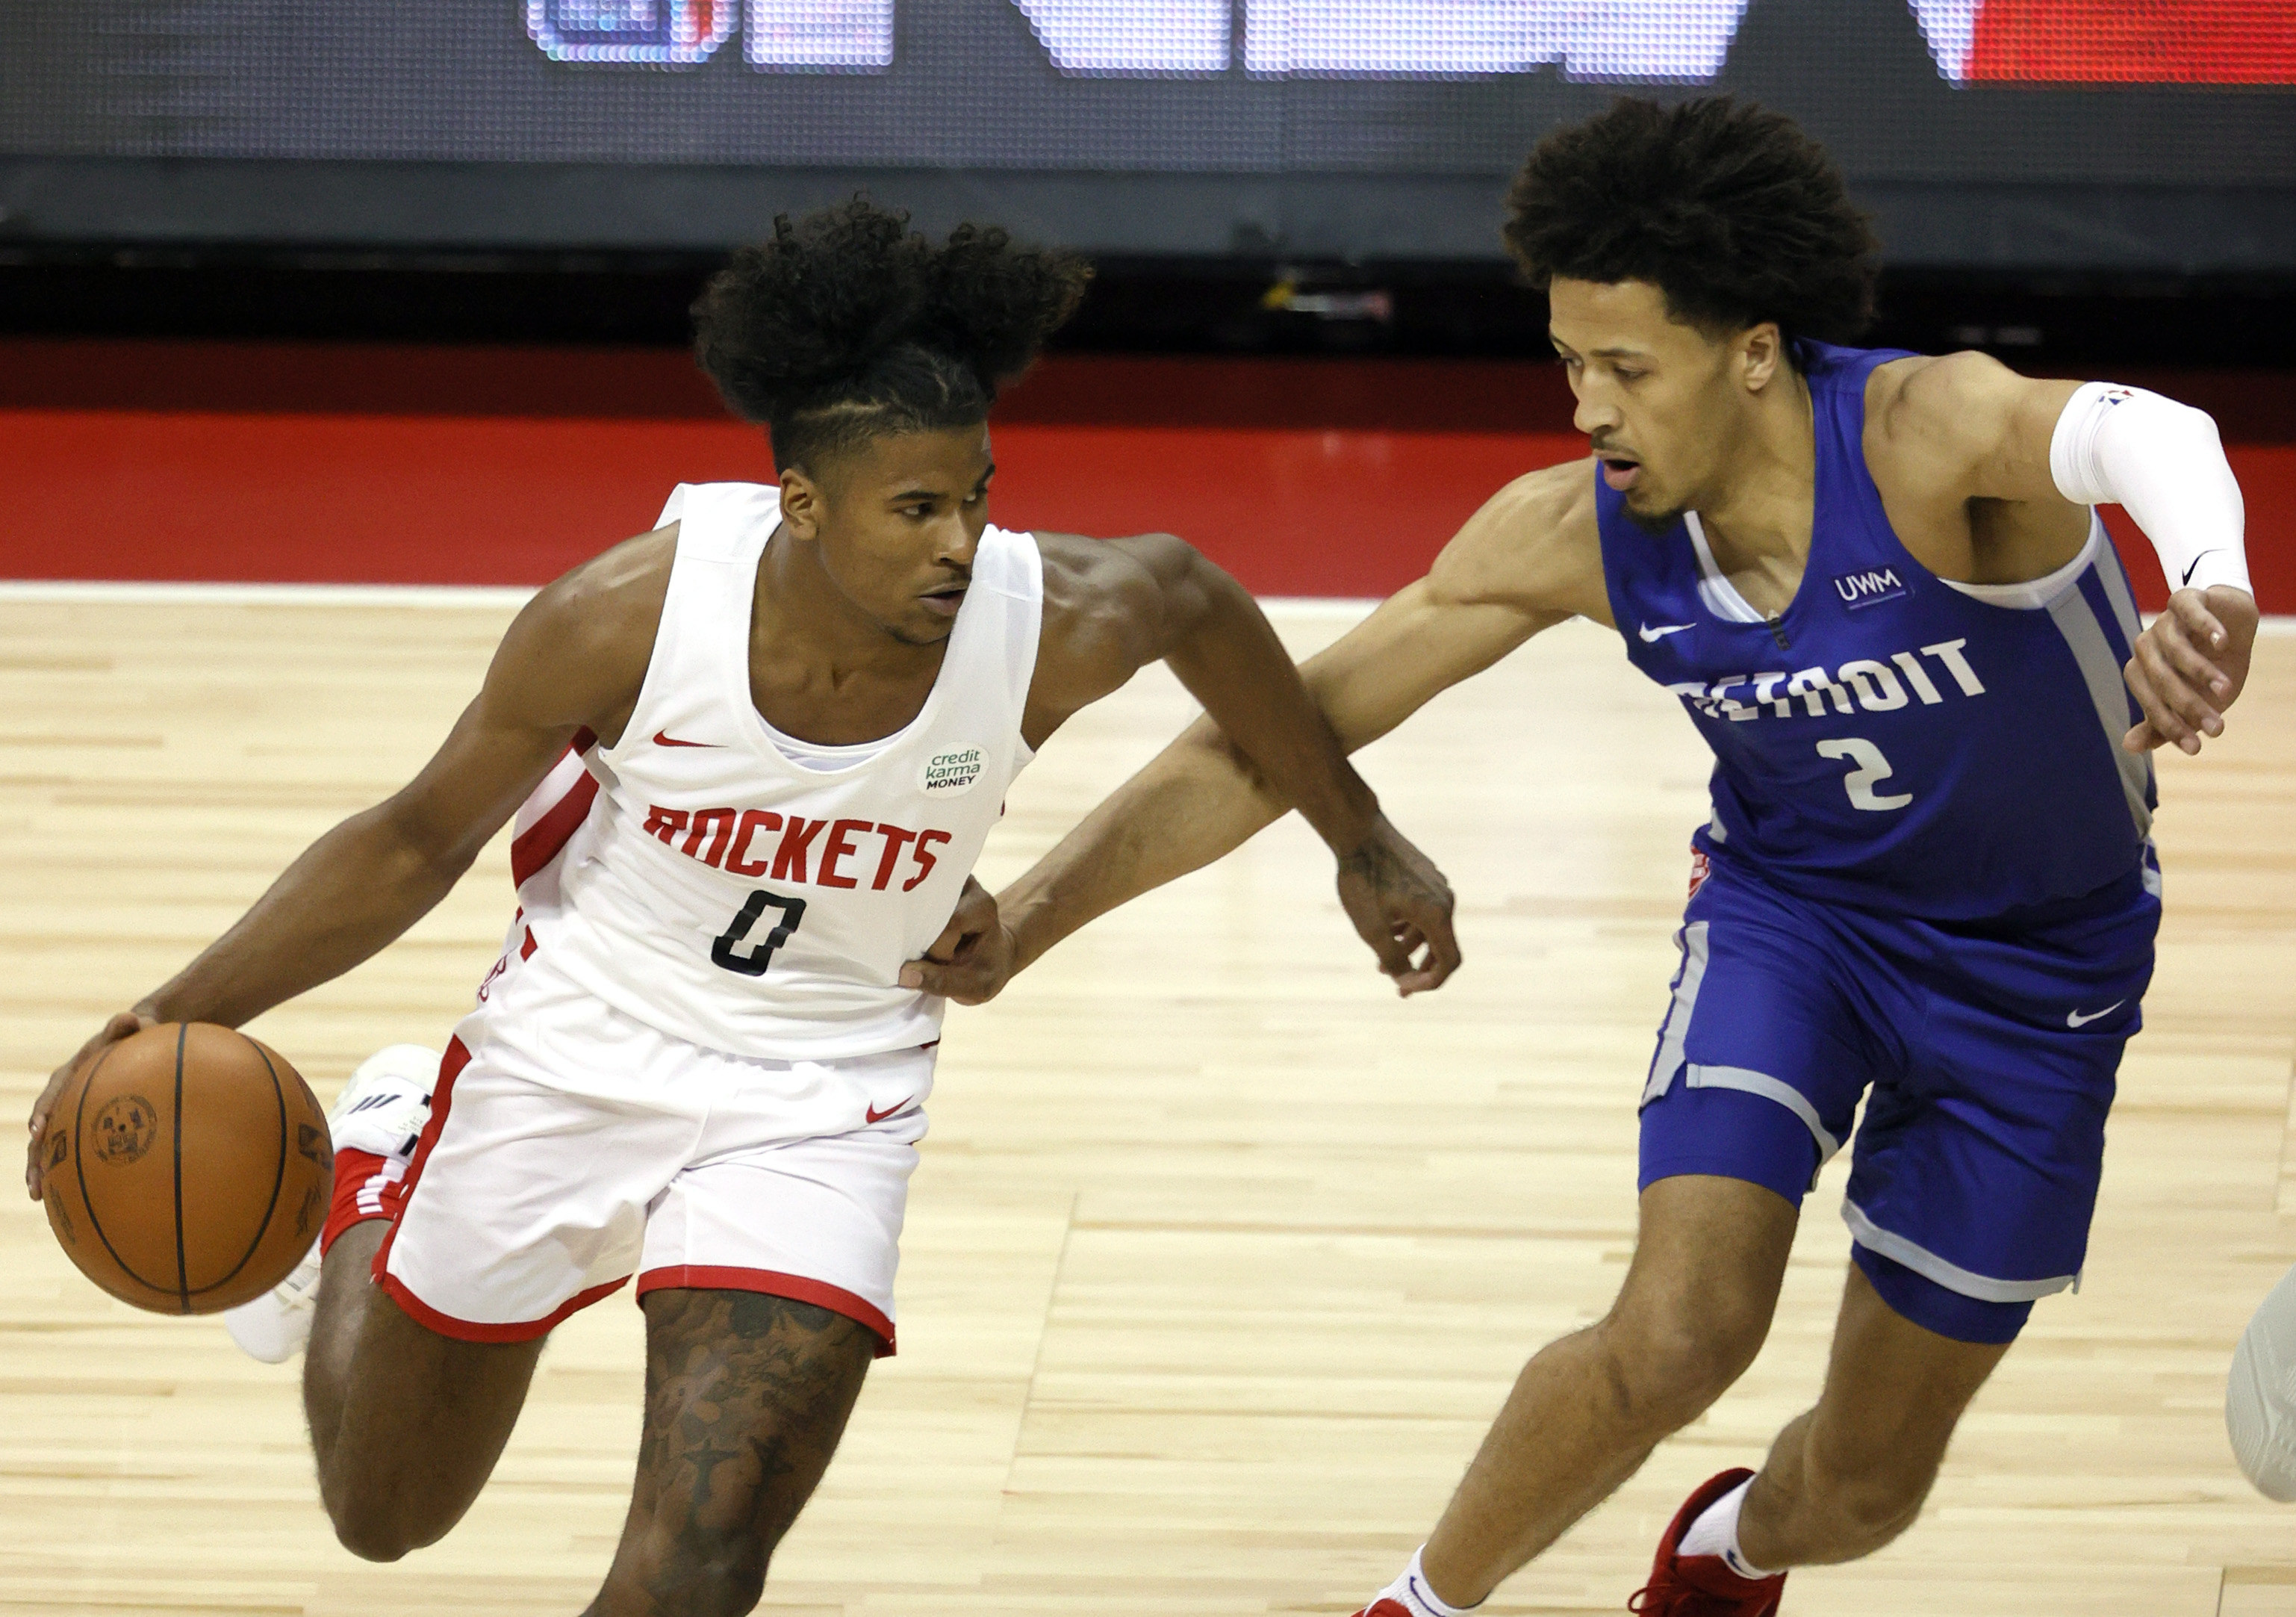 Jalen Green #0 of the Houston Rockets drives against Cade Cunningham #2 of the Detroit Pistons during the 2021 NBA Summer League at the Thomas & Mack Center on August 10, 2021 in Las Vegas, Nevada.